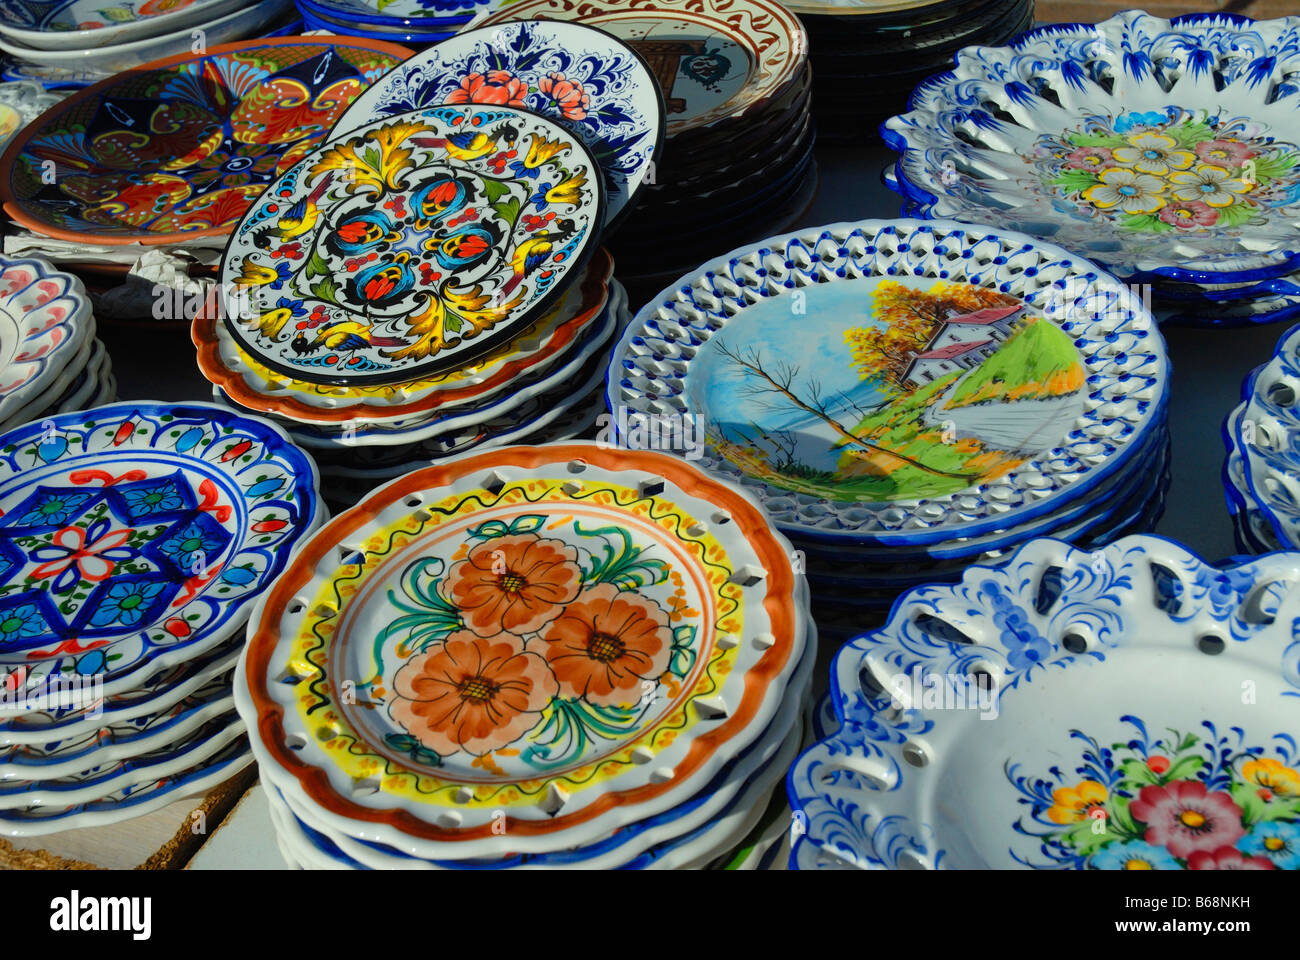 Pottery on the lively Spanish Market of Fuengirola Andalucia Spain & Pottery on the lively Spanish Market of Fuengirola Andalucia Spain ...